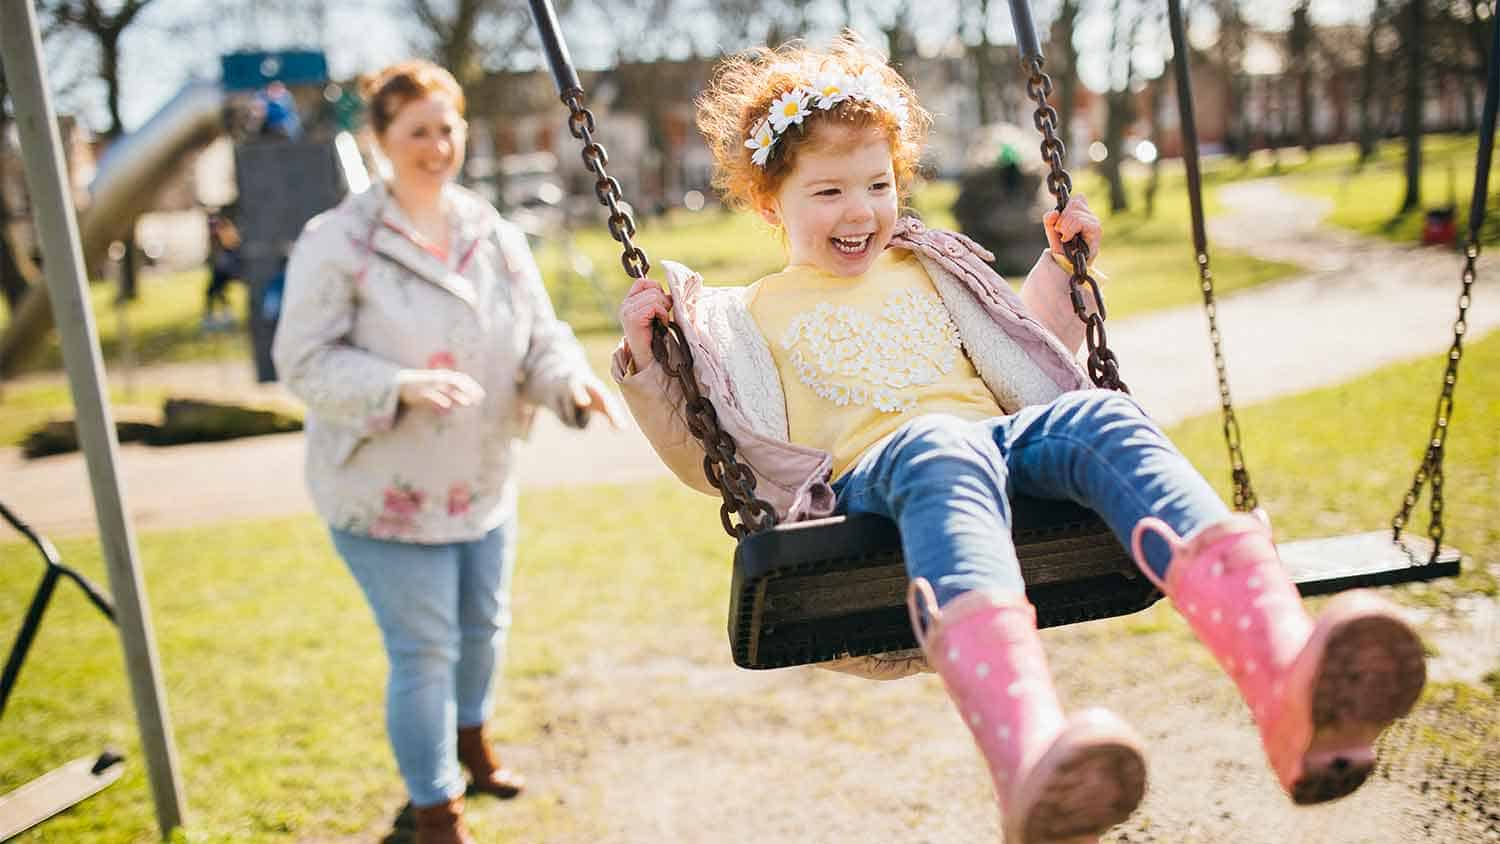 Young girl on a swing in a playground